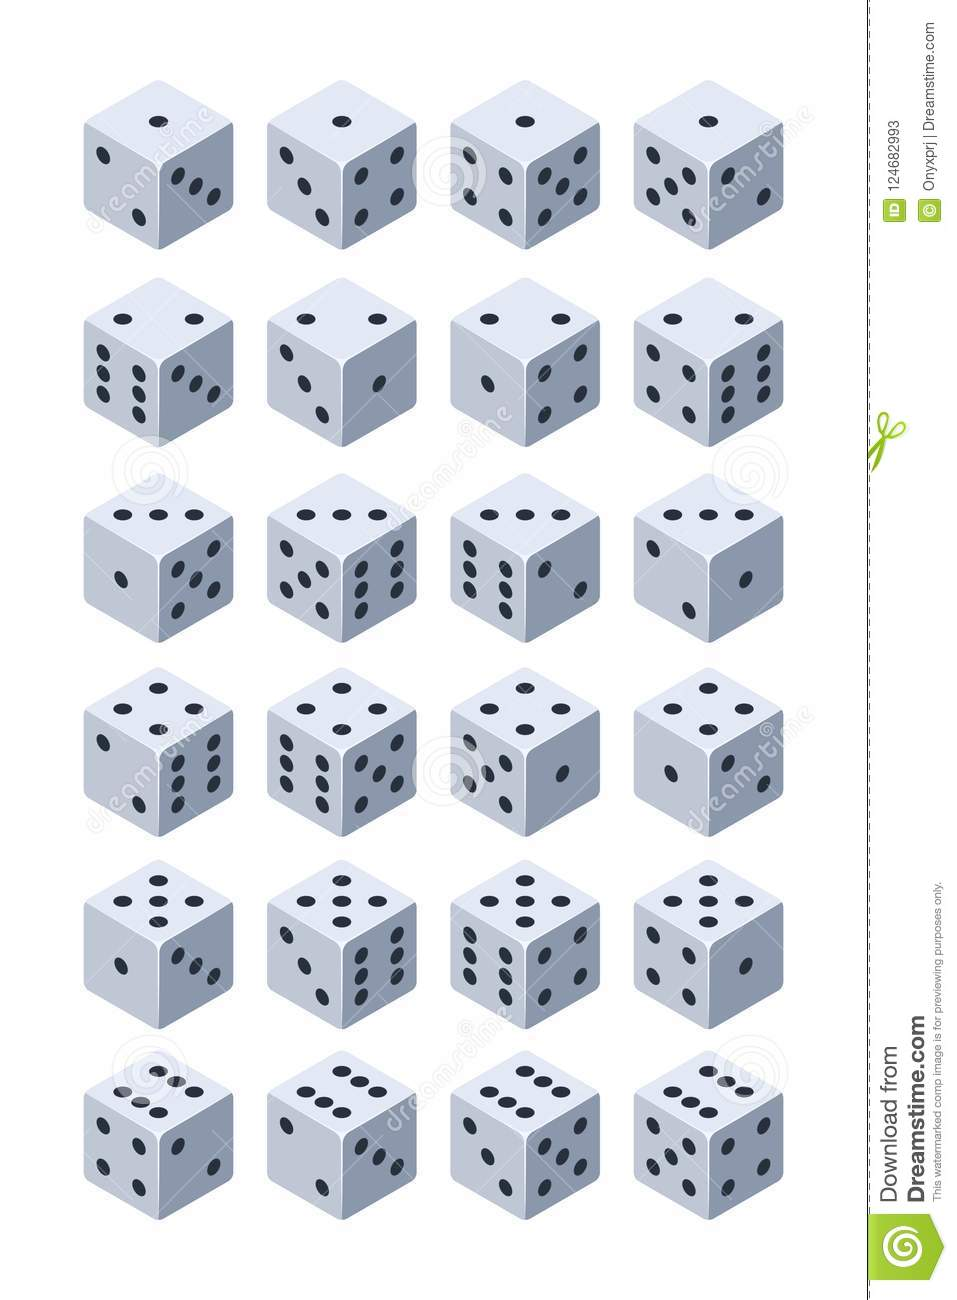 Dice for play. Various isometric 3d pictures of dice for games